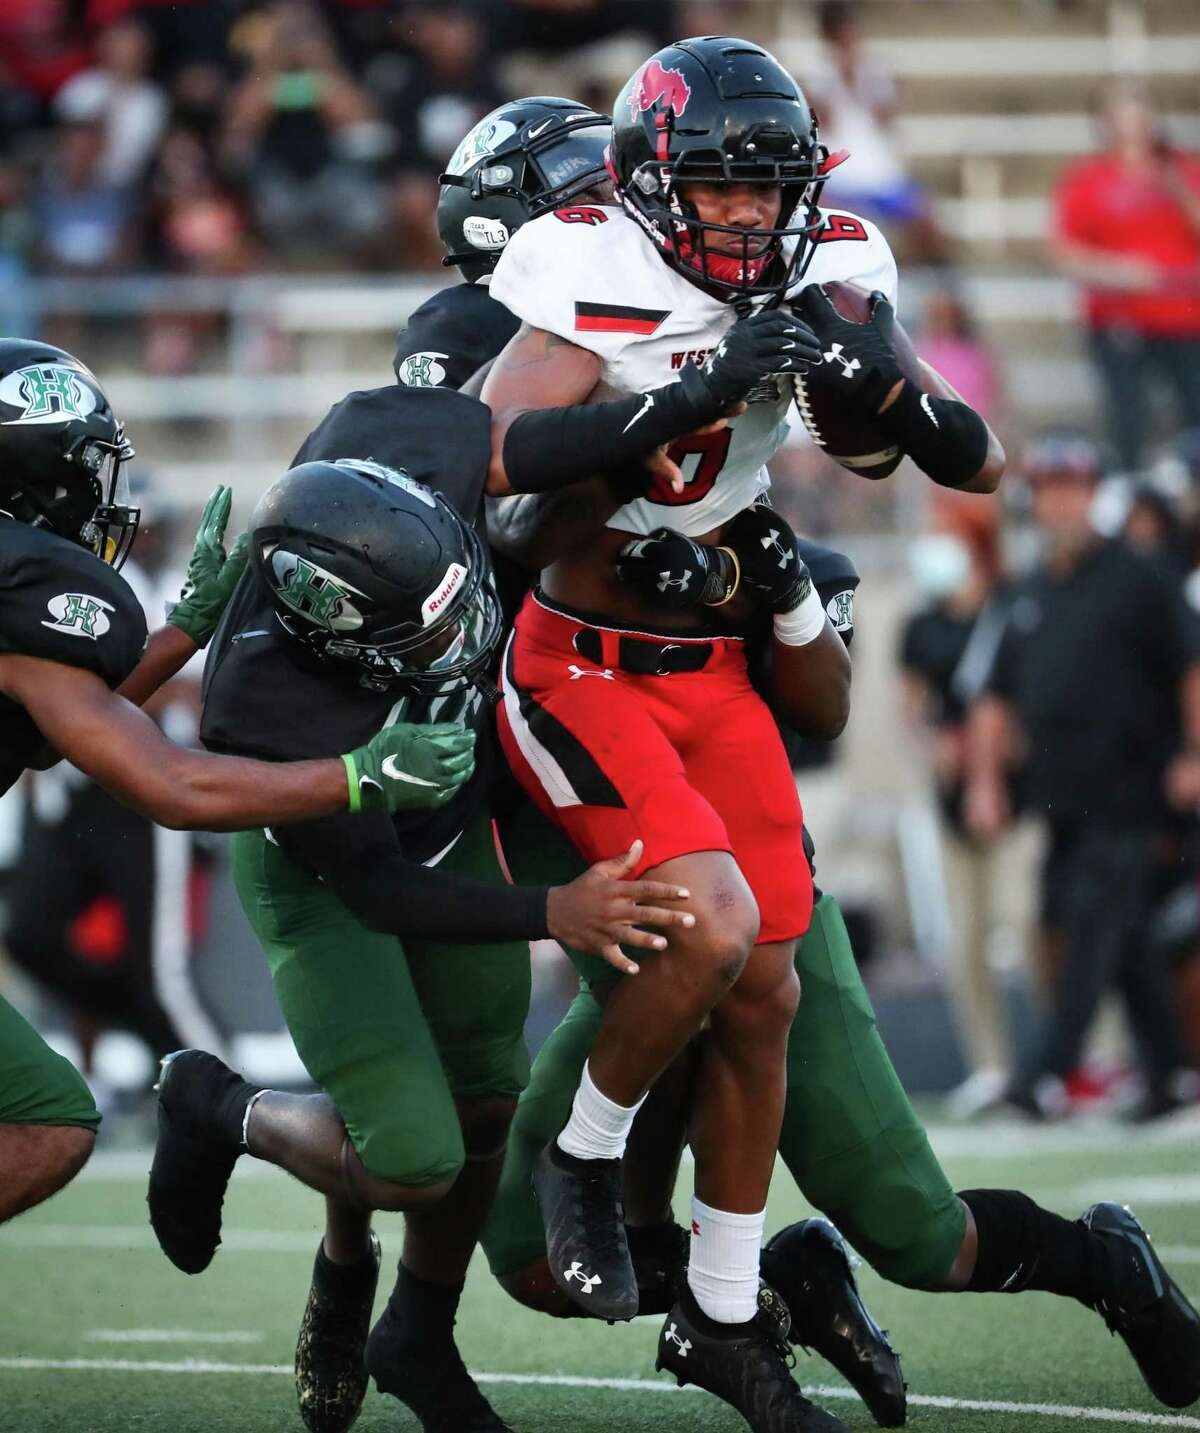 Westfield wide receiver Chuuky Hines (6) is stopped by Hightower defenders after hauling in a reception for a first down during the first half of a non-district high school football game at Hall Stadium Friday, Sept. 3, 2021 in Missouri City.